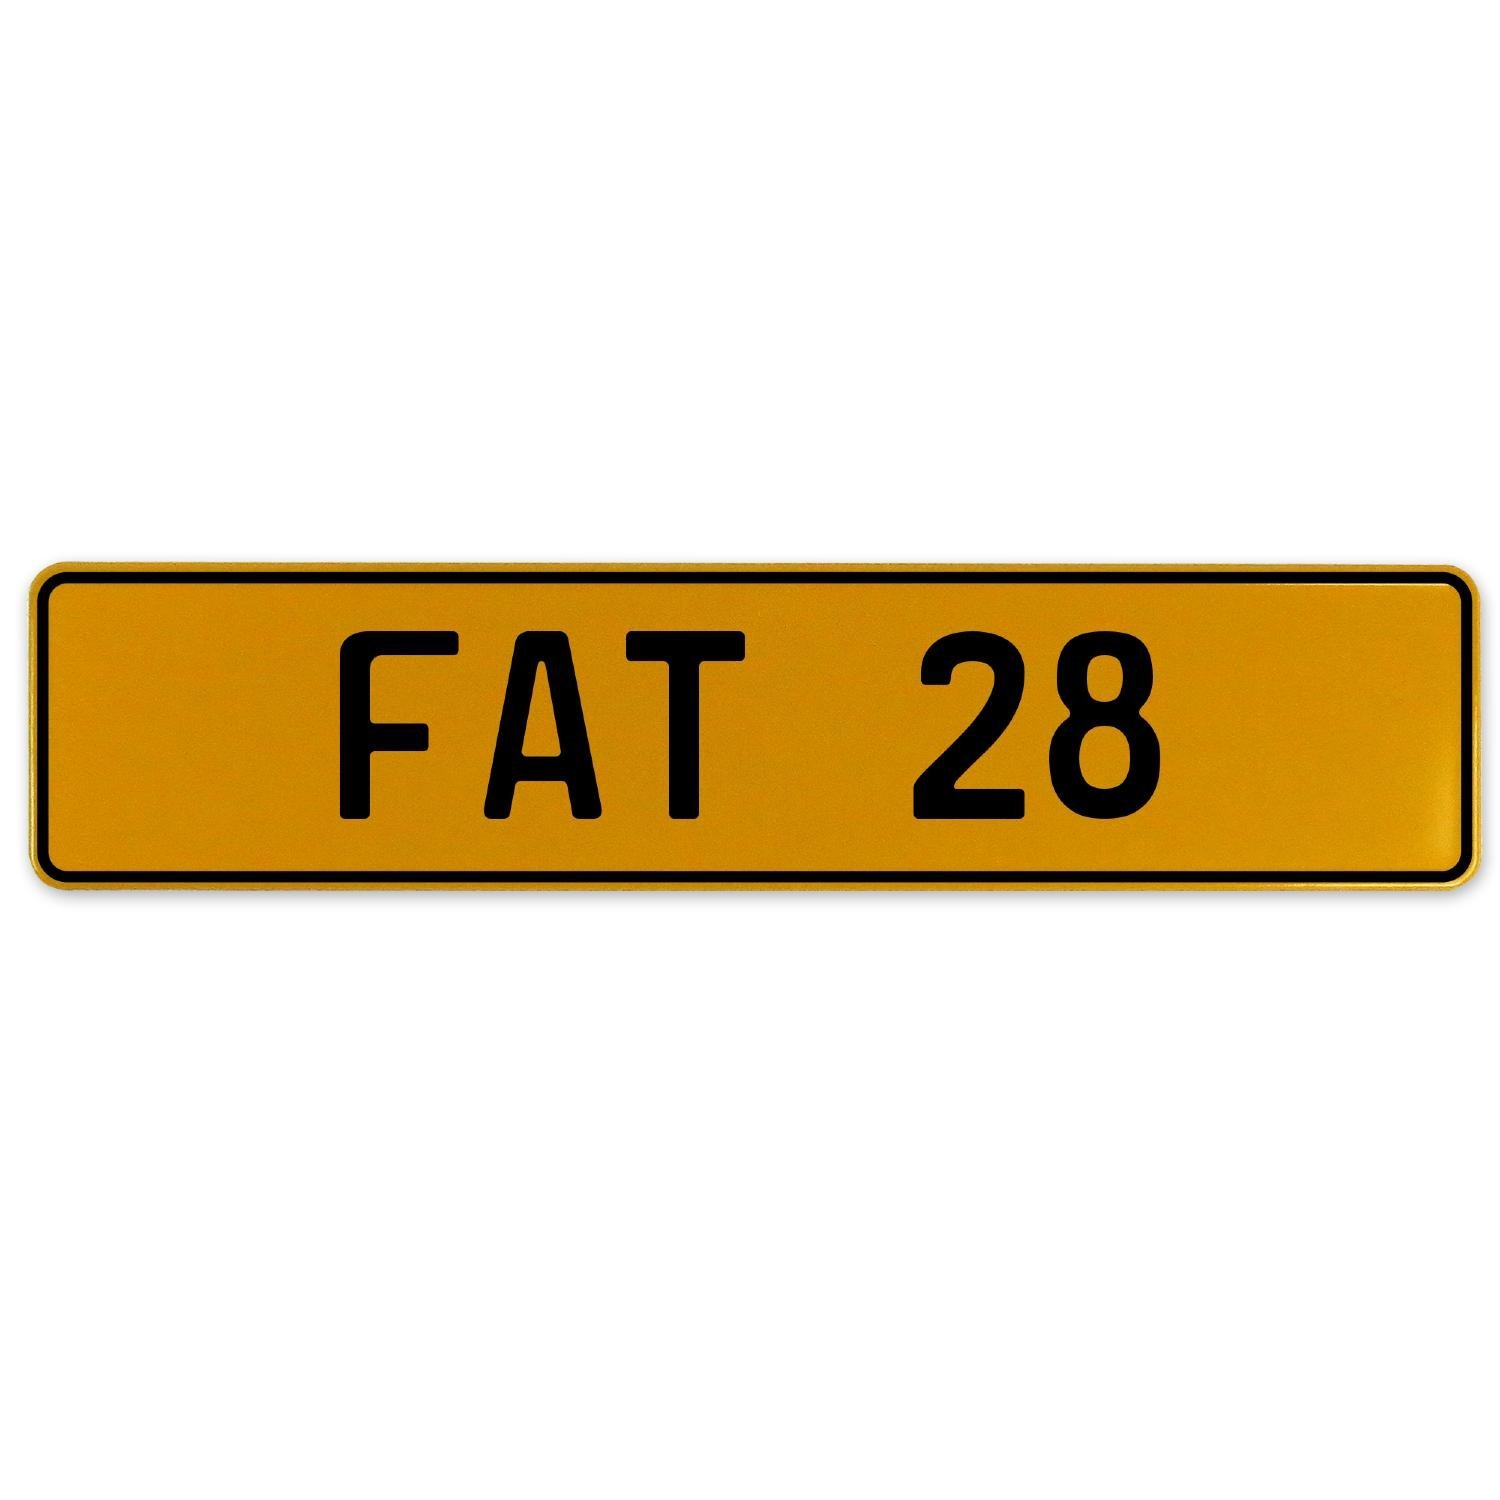 Fat 28 Vintage Parts 559575 Yellow Stamped Aluminum European Plate